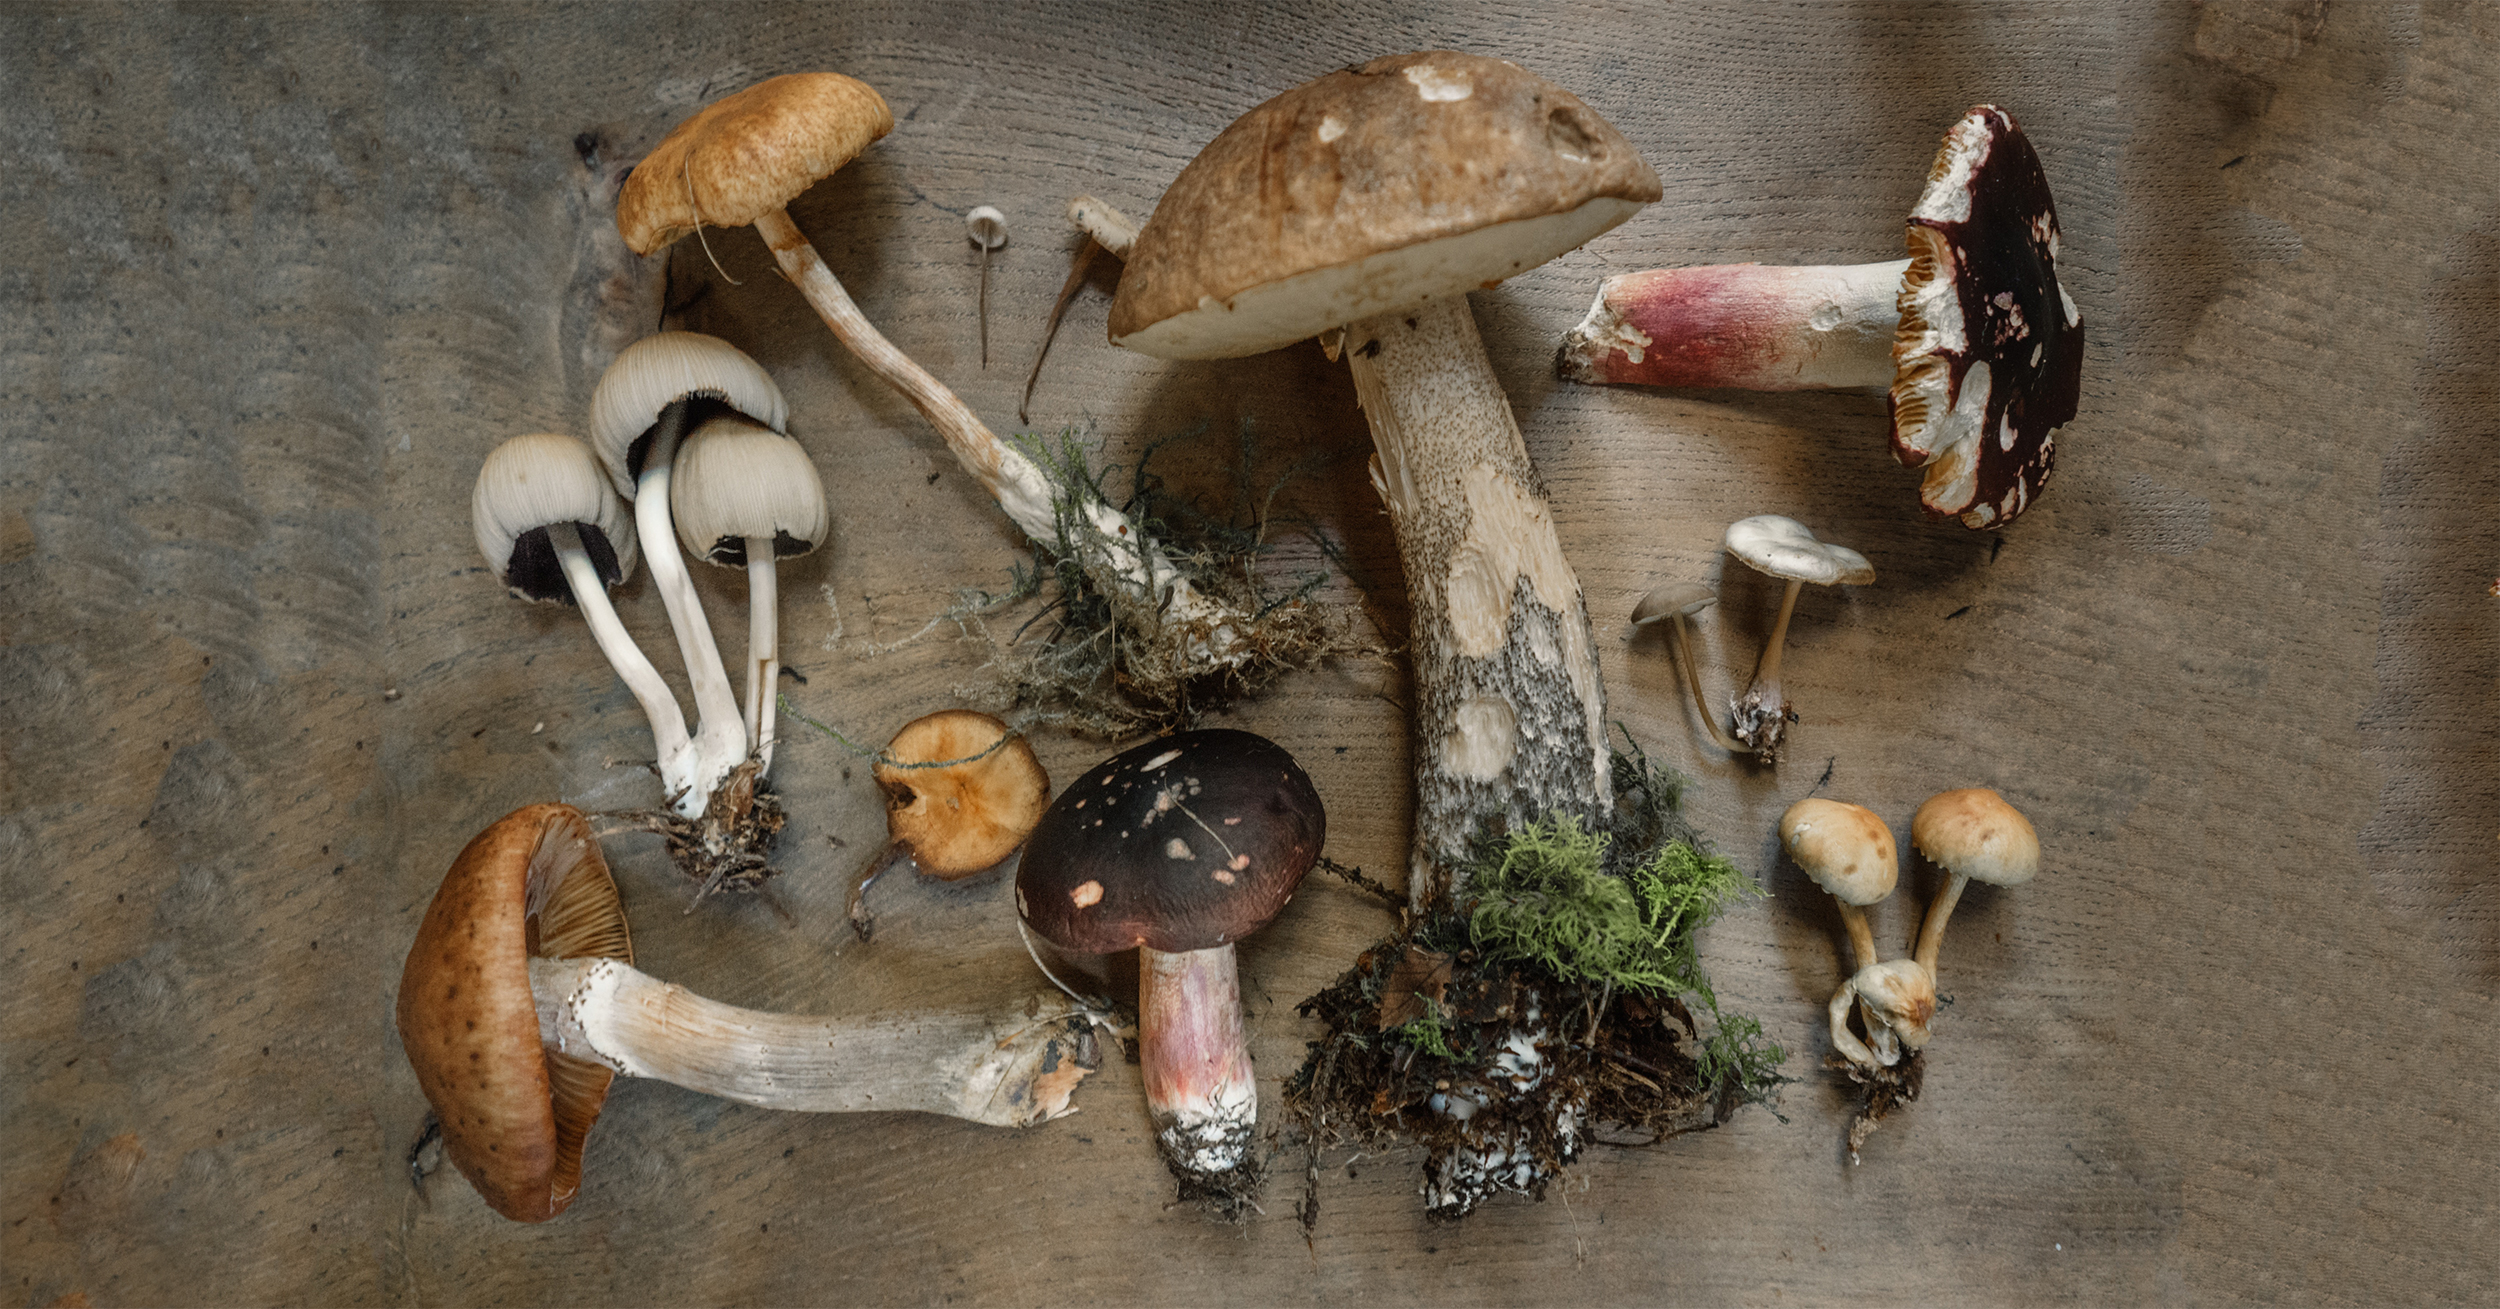 The Miracle Mushroom for Health, Wealth and Happiness